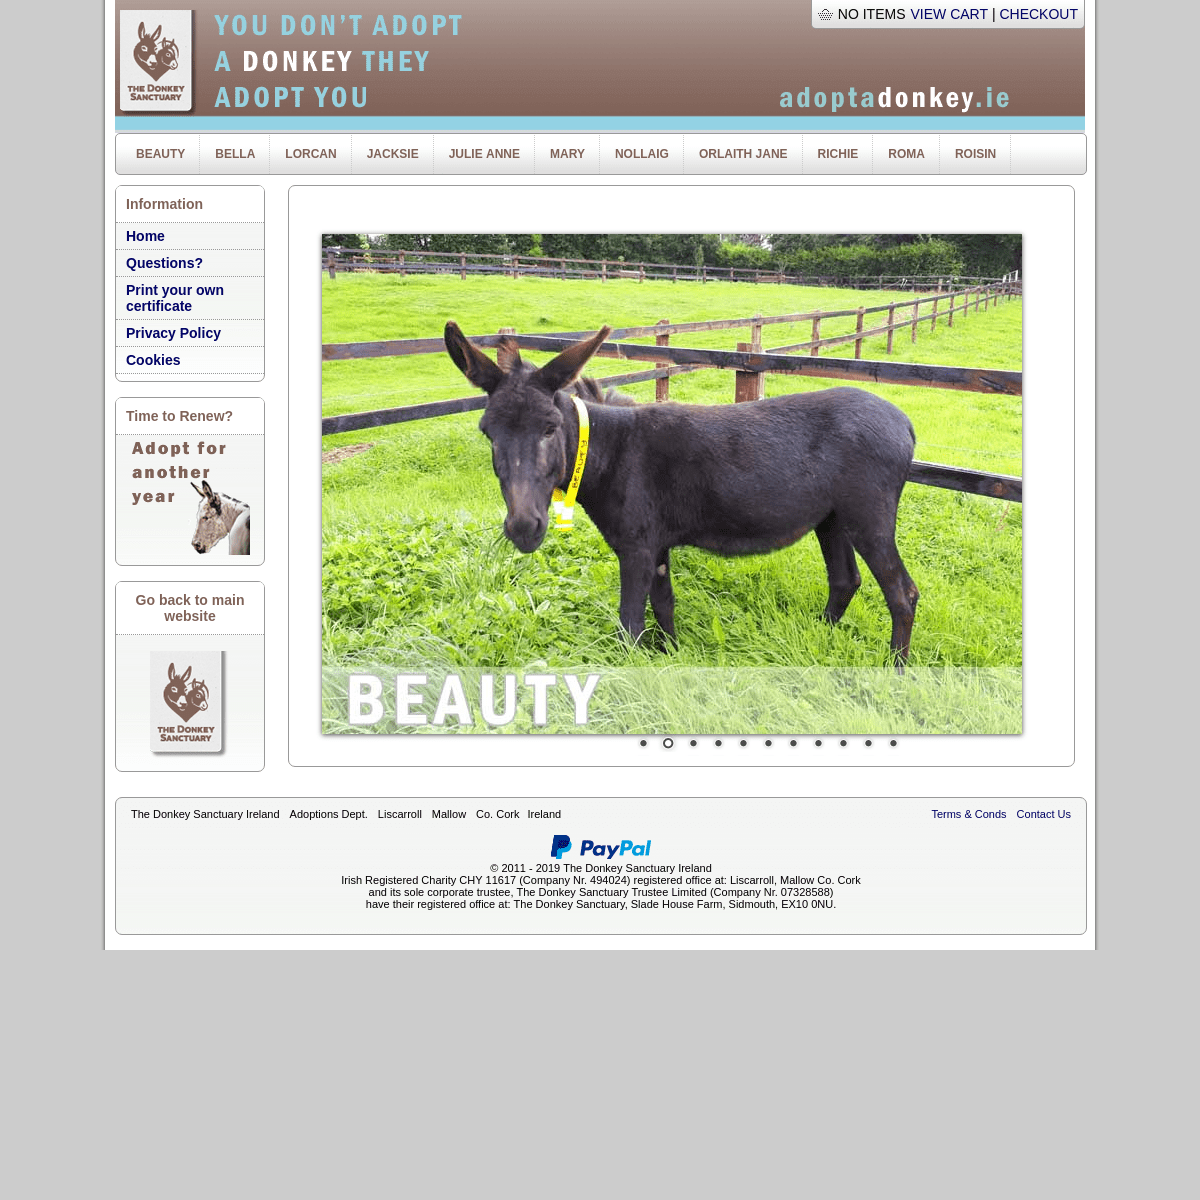 Adopt a Donkey in Ireland